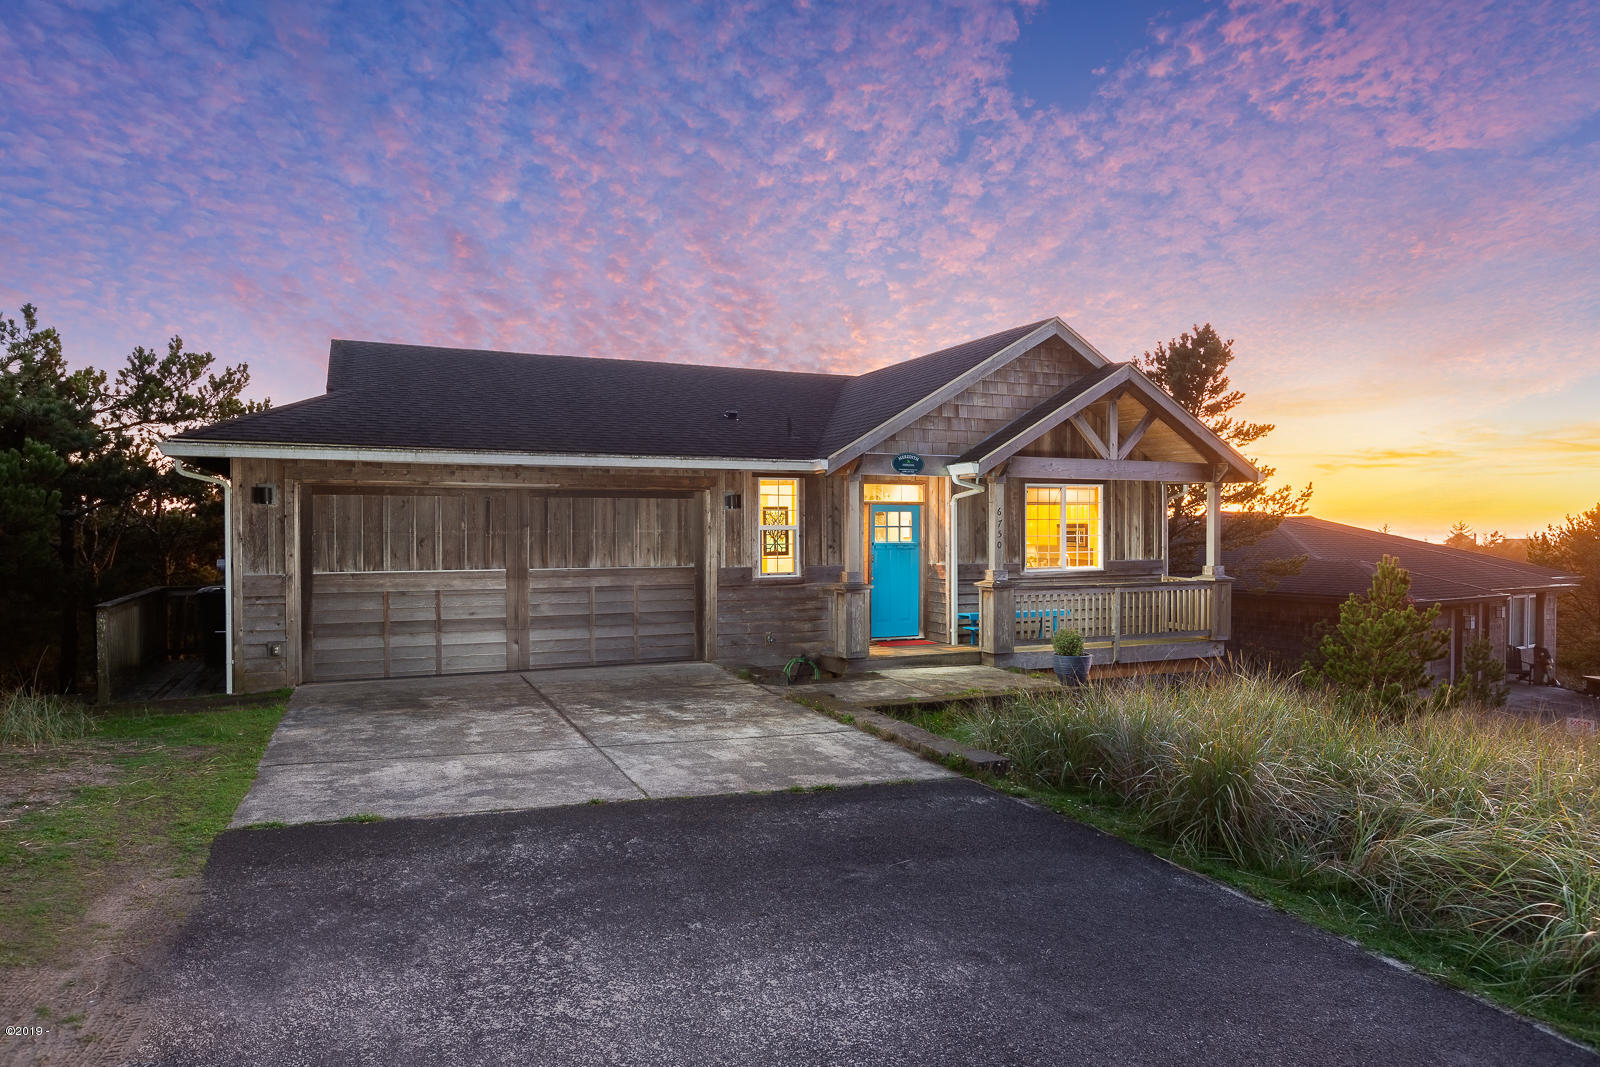 6750 Nestucca Ridge Rd, Pacific City, OR 97135 - 6750NestuccaRidge-01